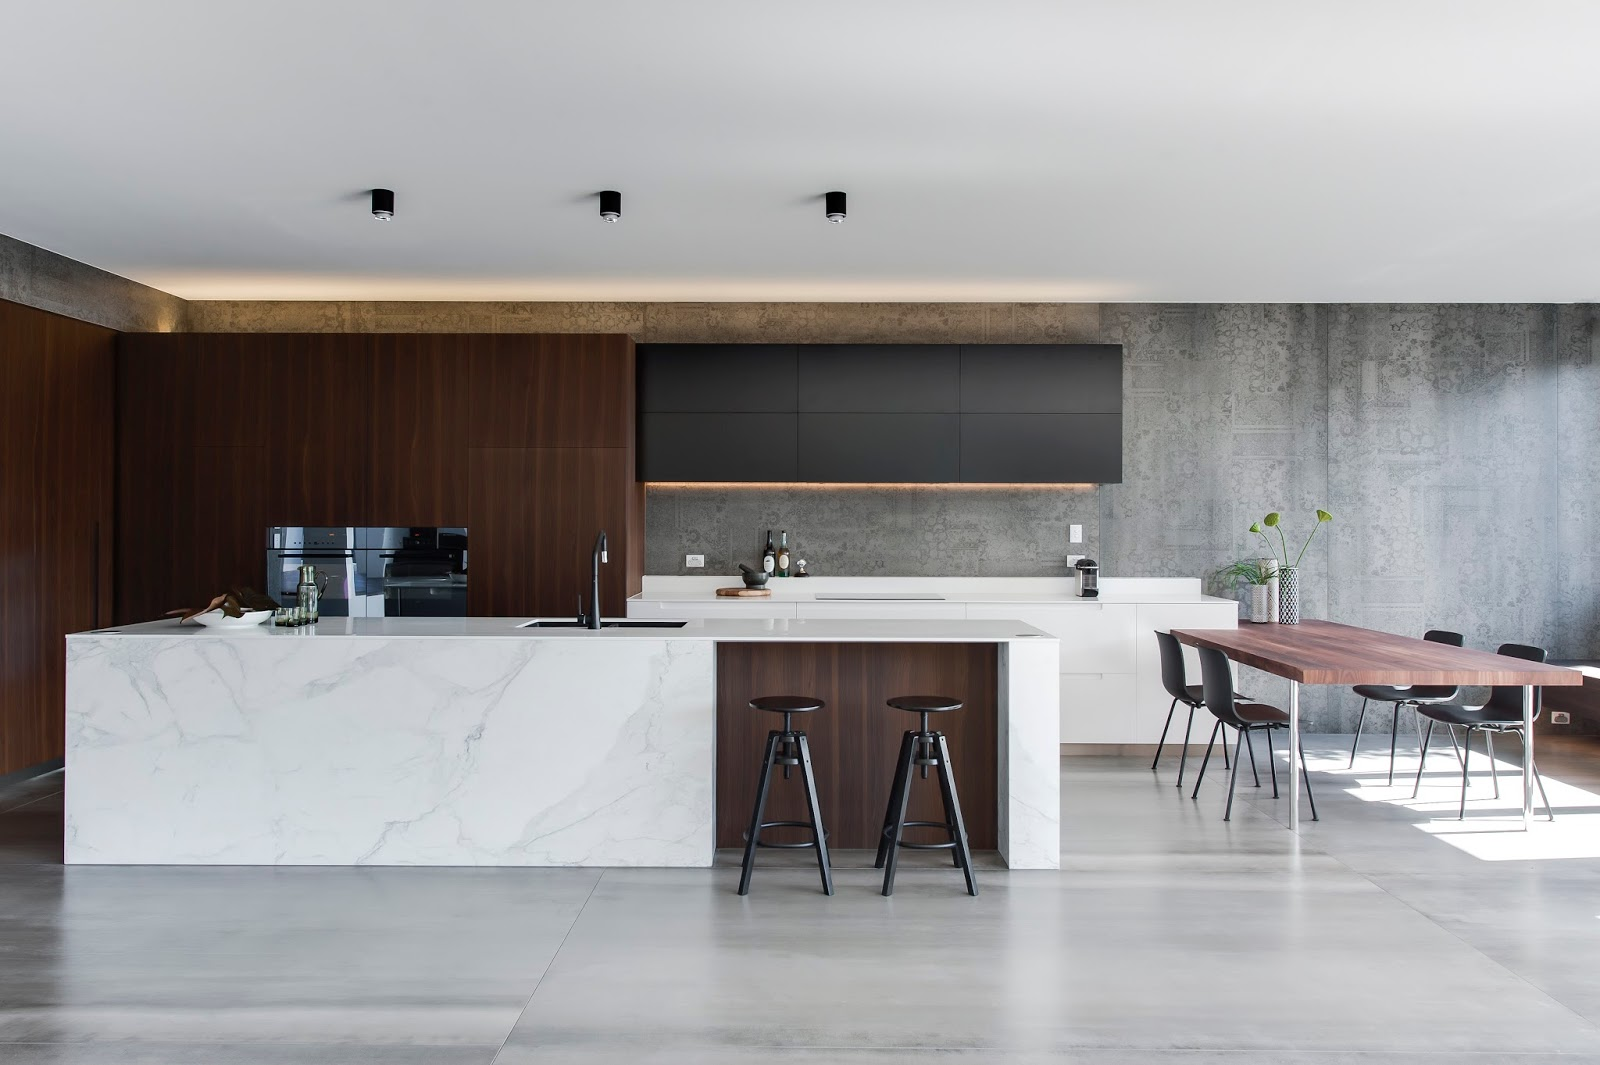 kitchen design us minosa amazing kitchen design leaves us with house envy 147